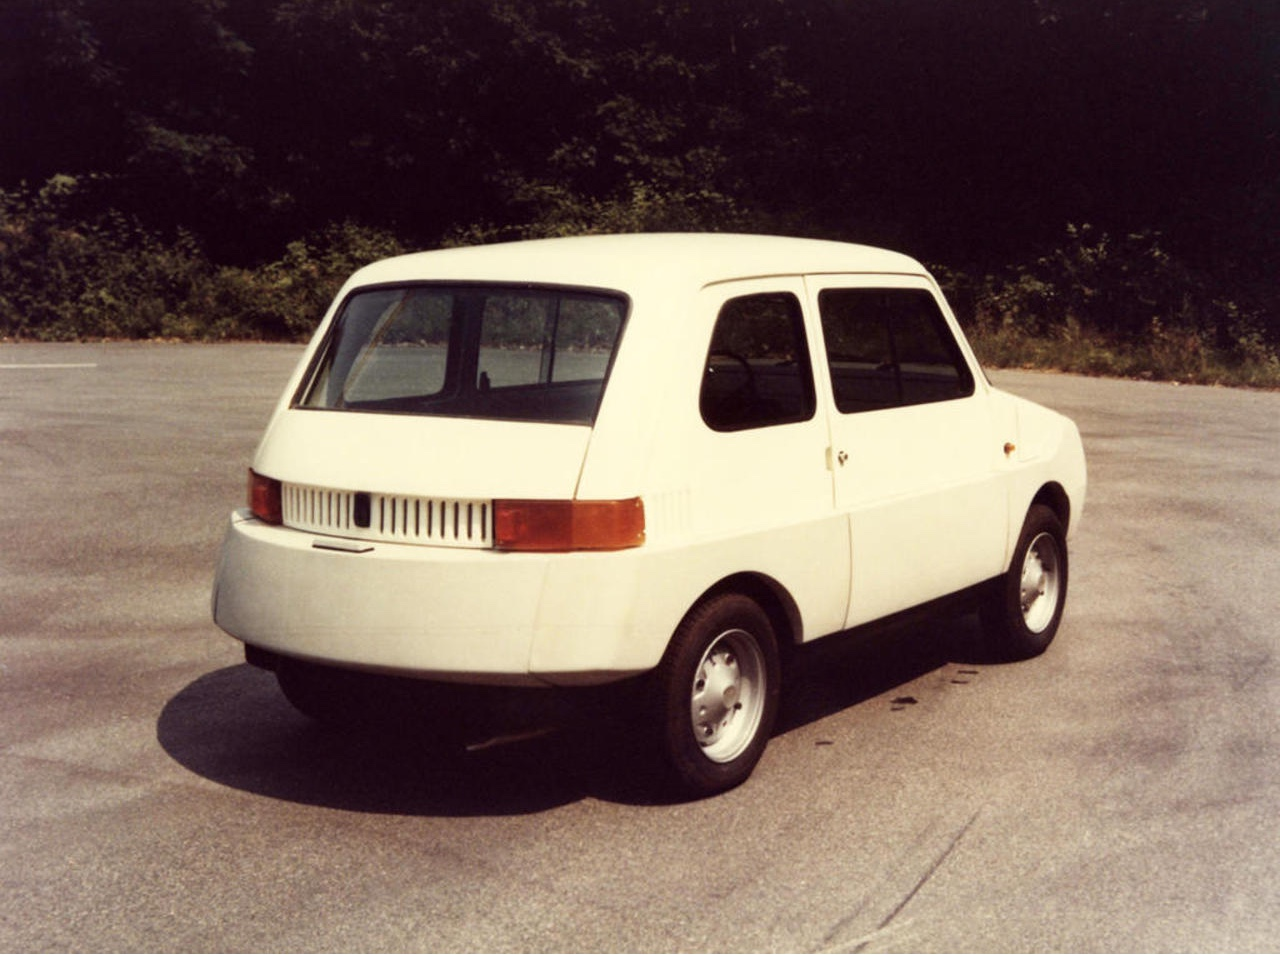 TheX 126 Softness was an experimental car prototype for Fiat. It wasconceived with an all-around plastic envelope, offering protection against low impact collisions.Image courtesy of Richard Sapper.